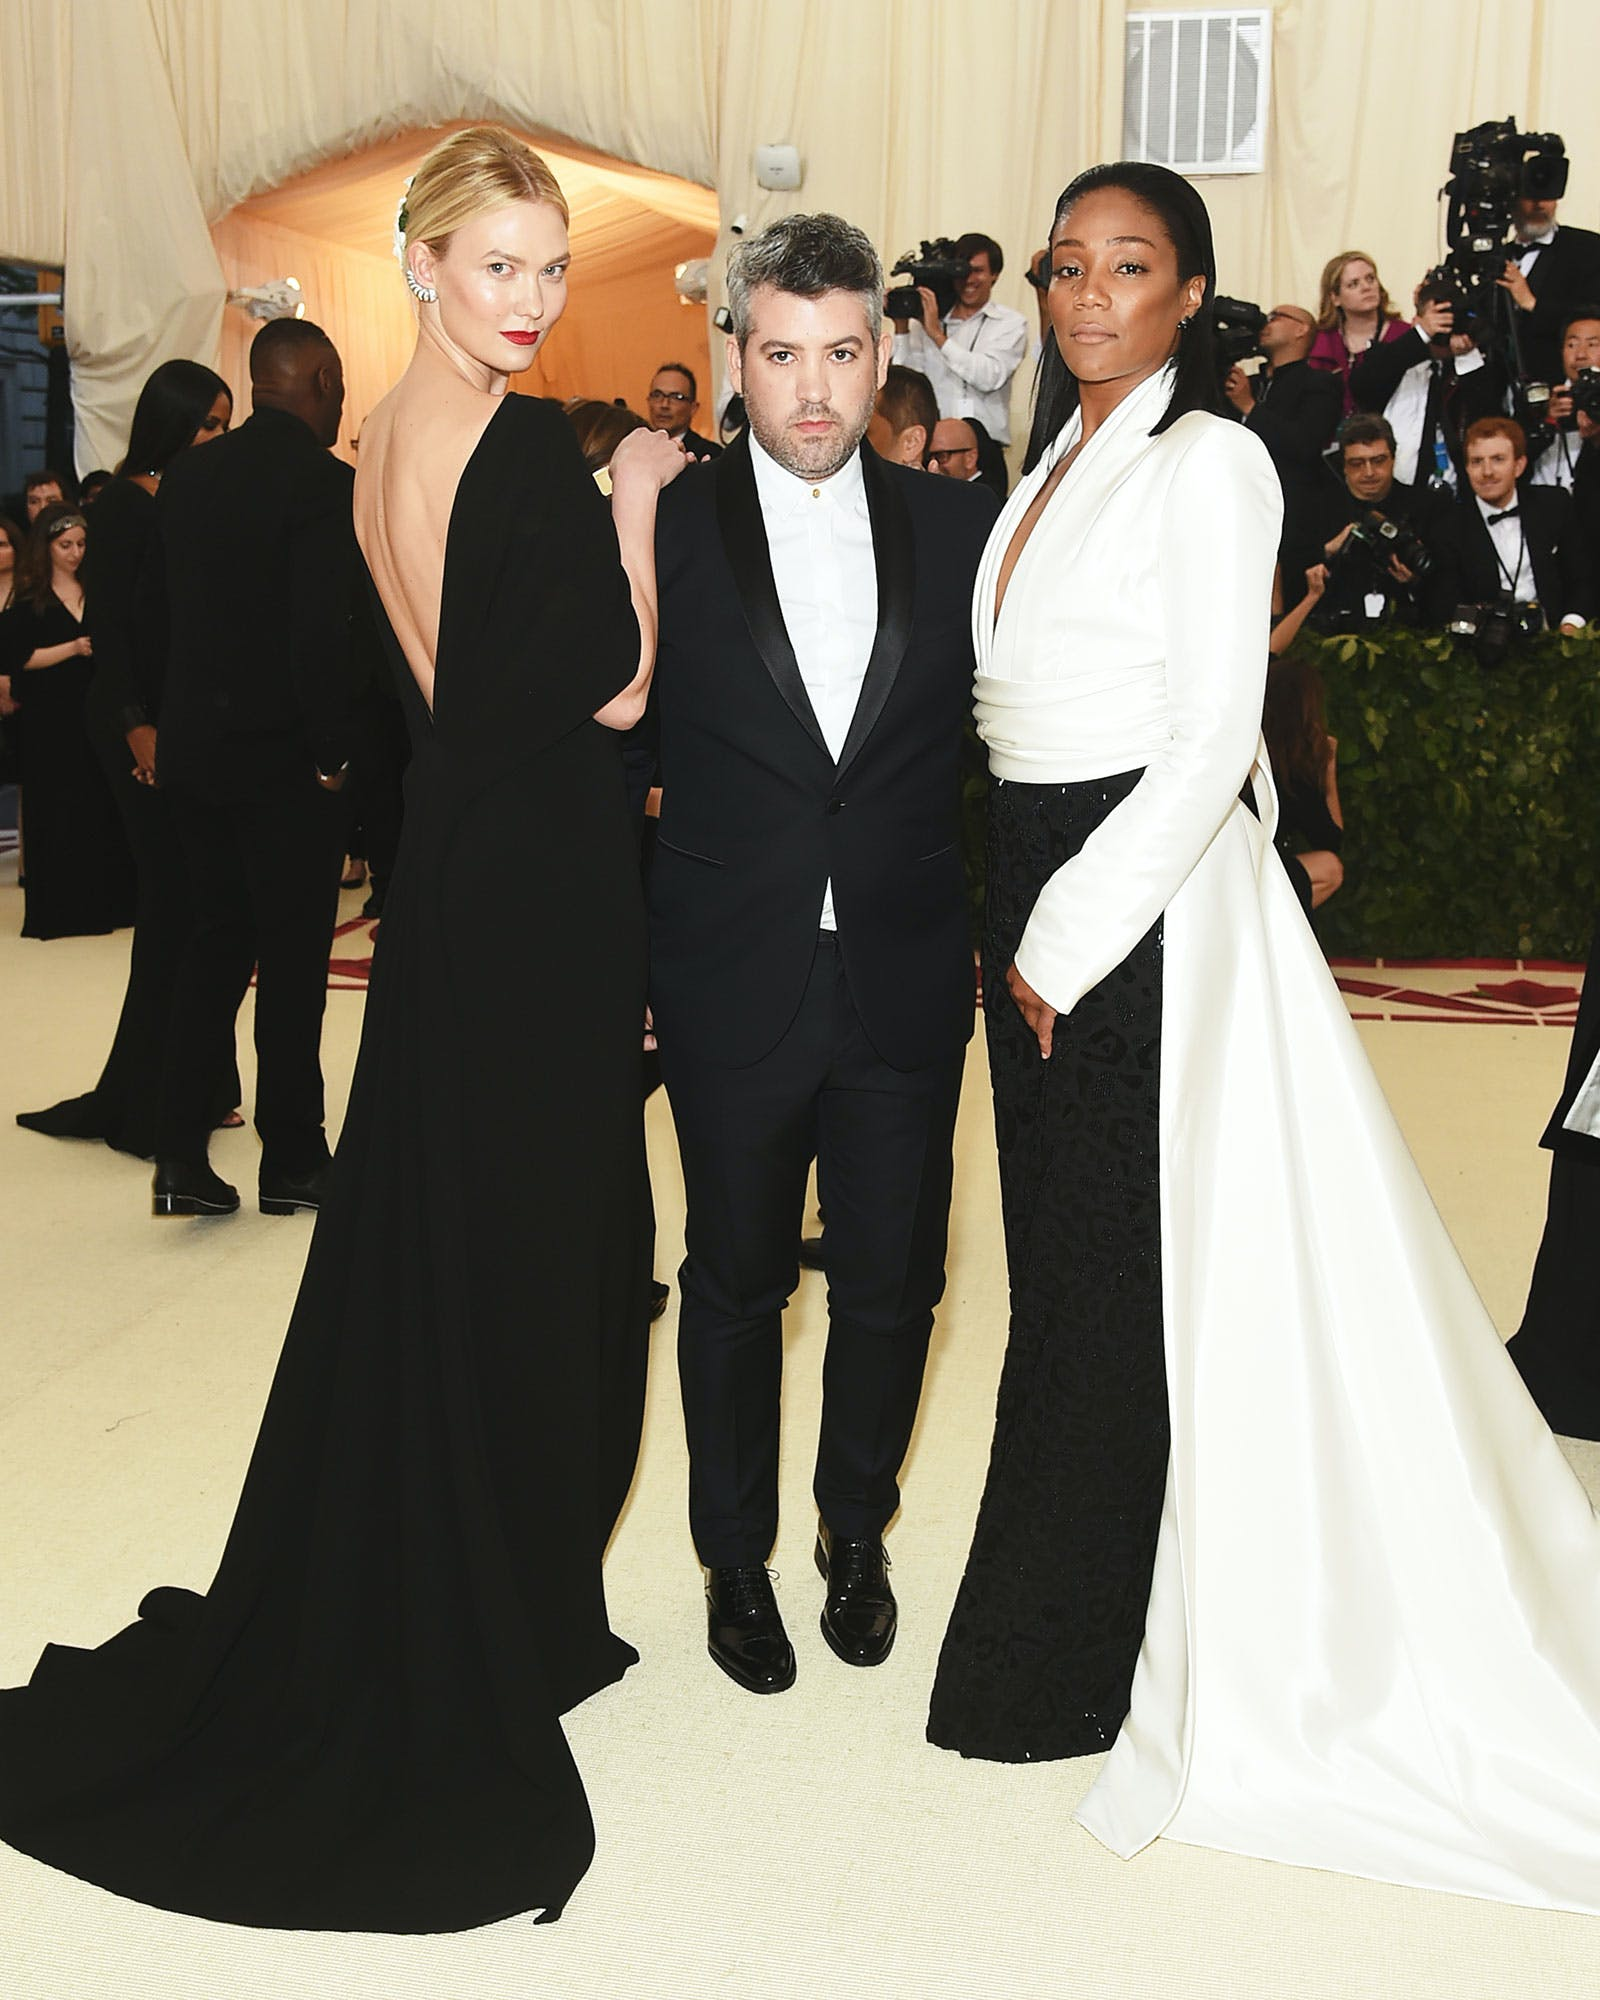 Karlie Kloss, Brandon Maxwell, Tiffany Haddish